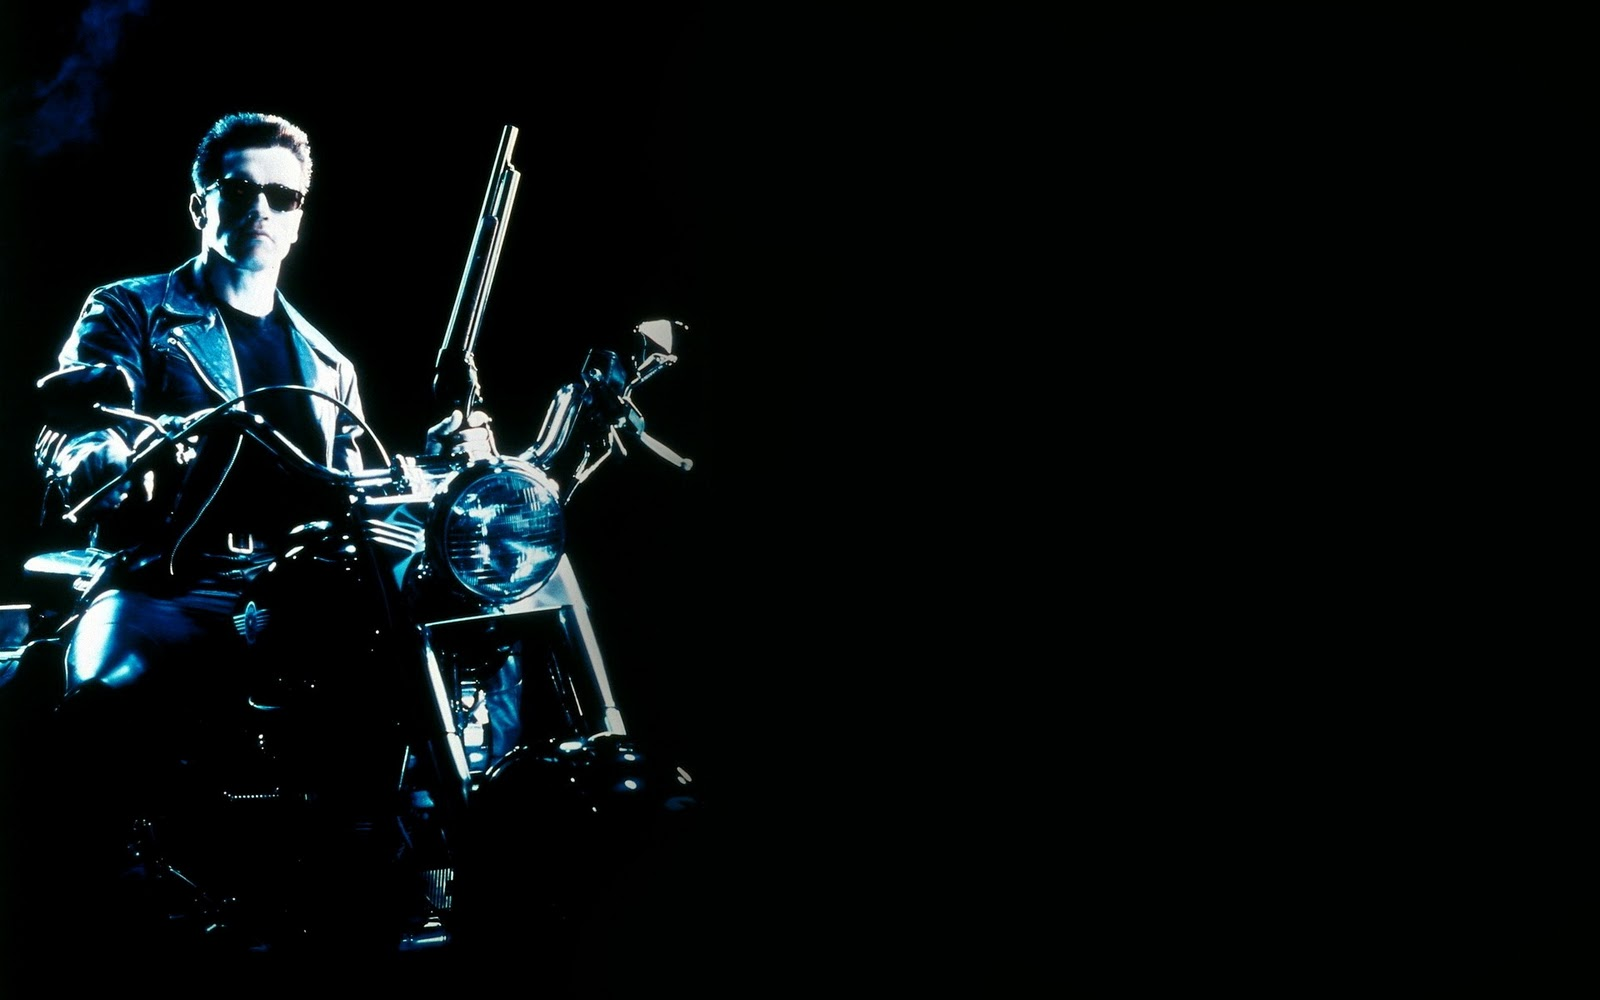 The Terminator HD Wallpapers Images   All HD Wallpapers 1600x1000